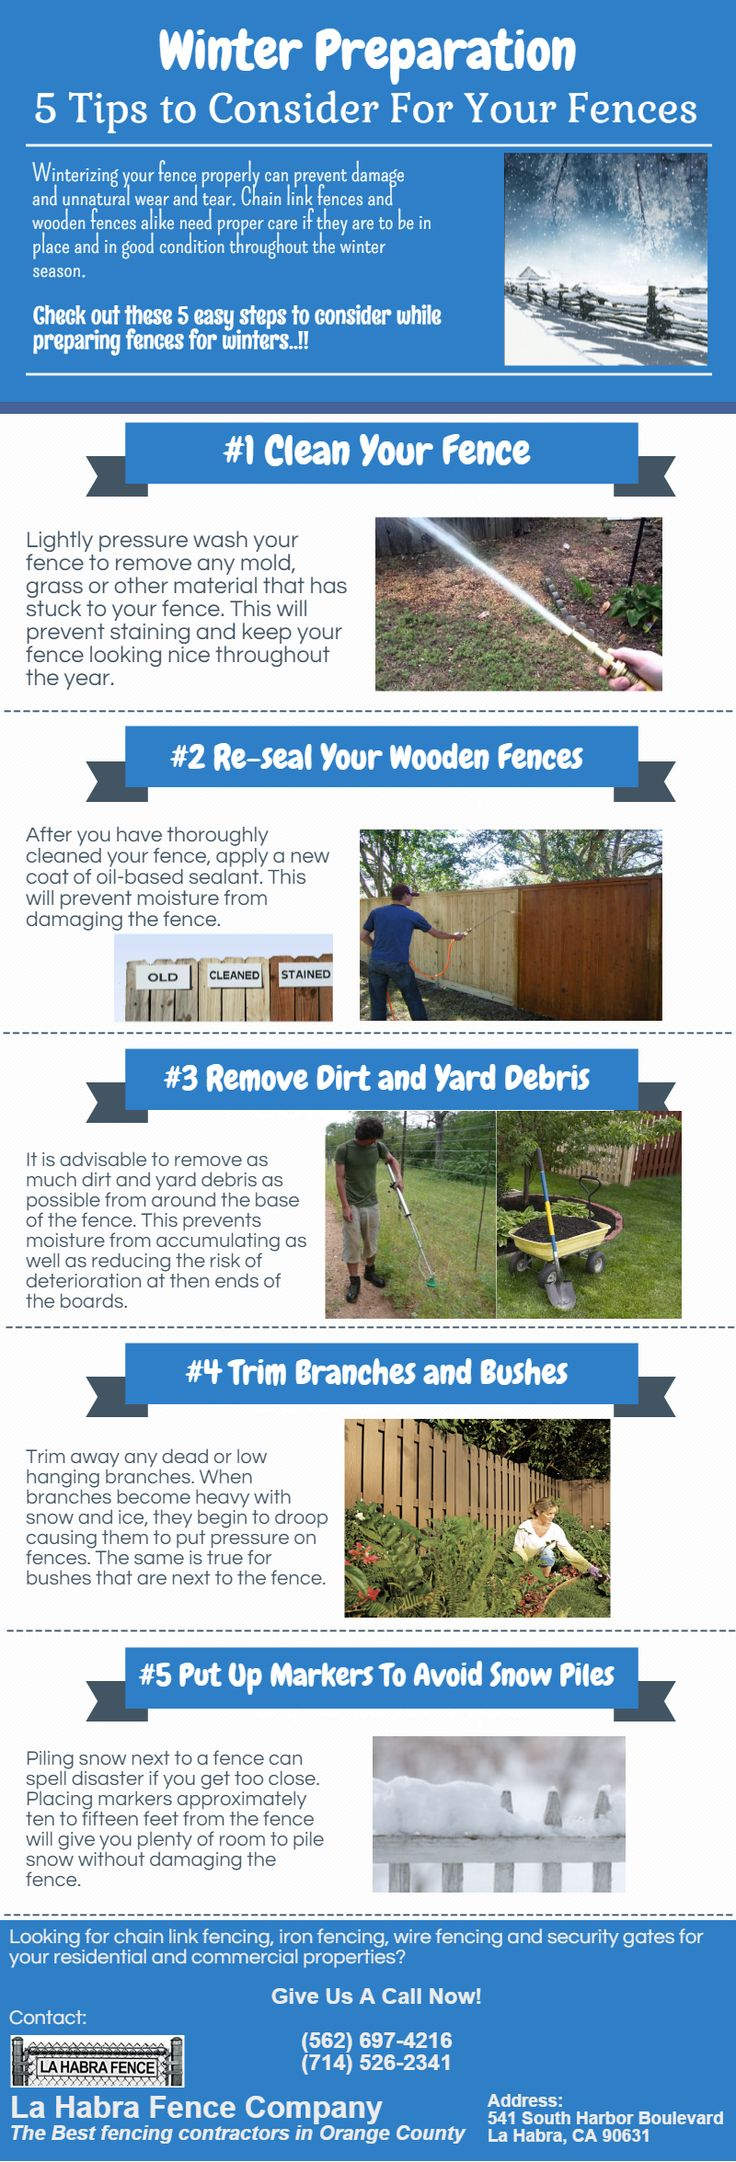 Winter Preparation: 5 Tips to Consider For Your Fences